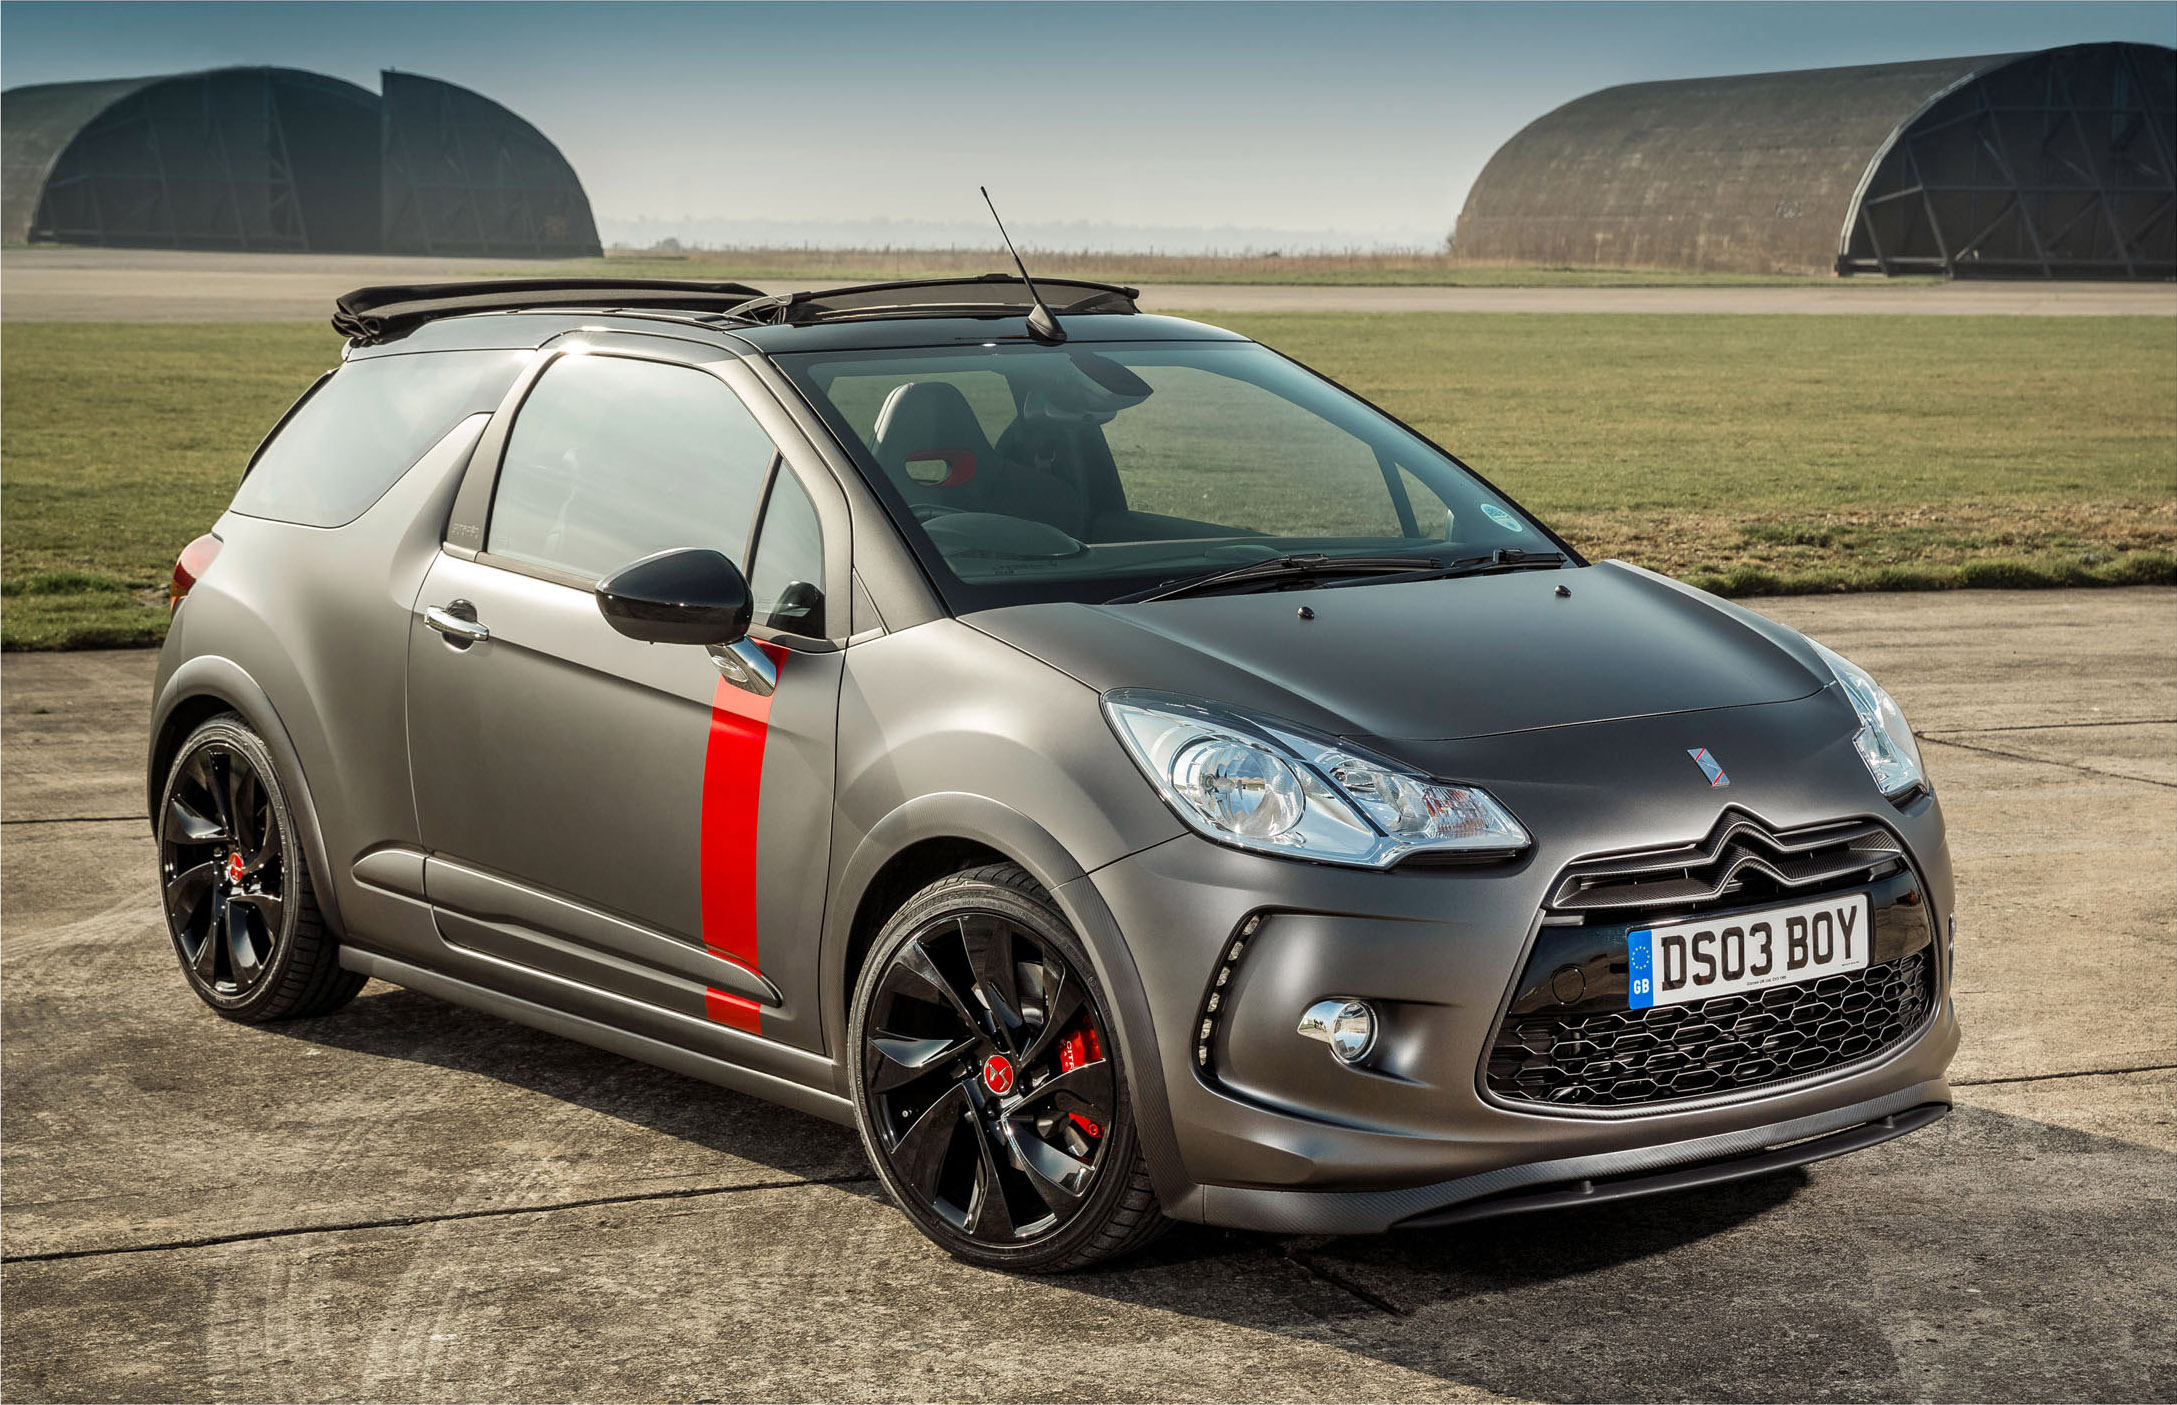 Citroen ds3 cabrio racing ultra limited edition goes on sale citroen ds3 cabrio racing ultra limited edition 10 of 24 vanachro Image collections